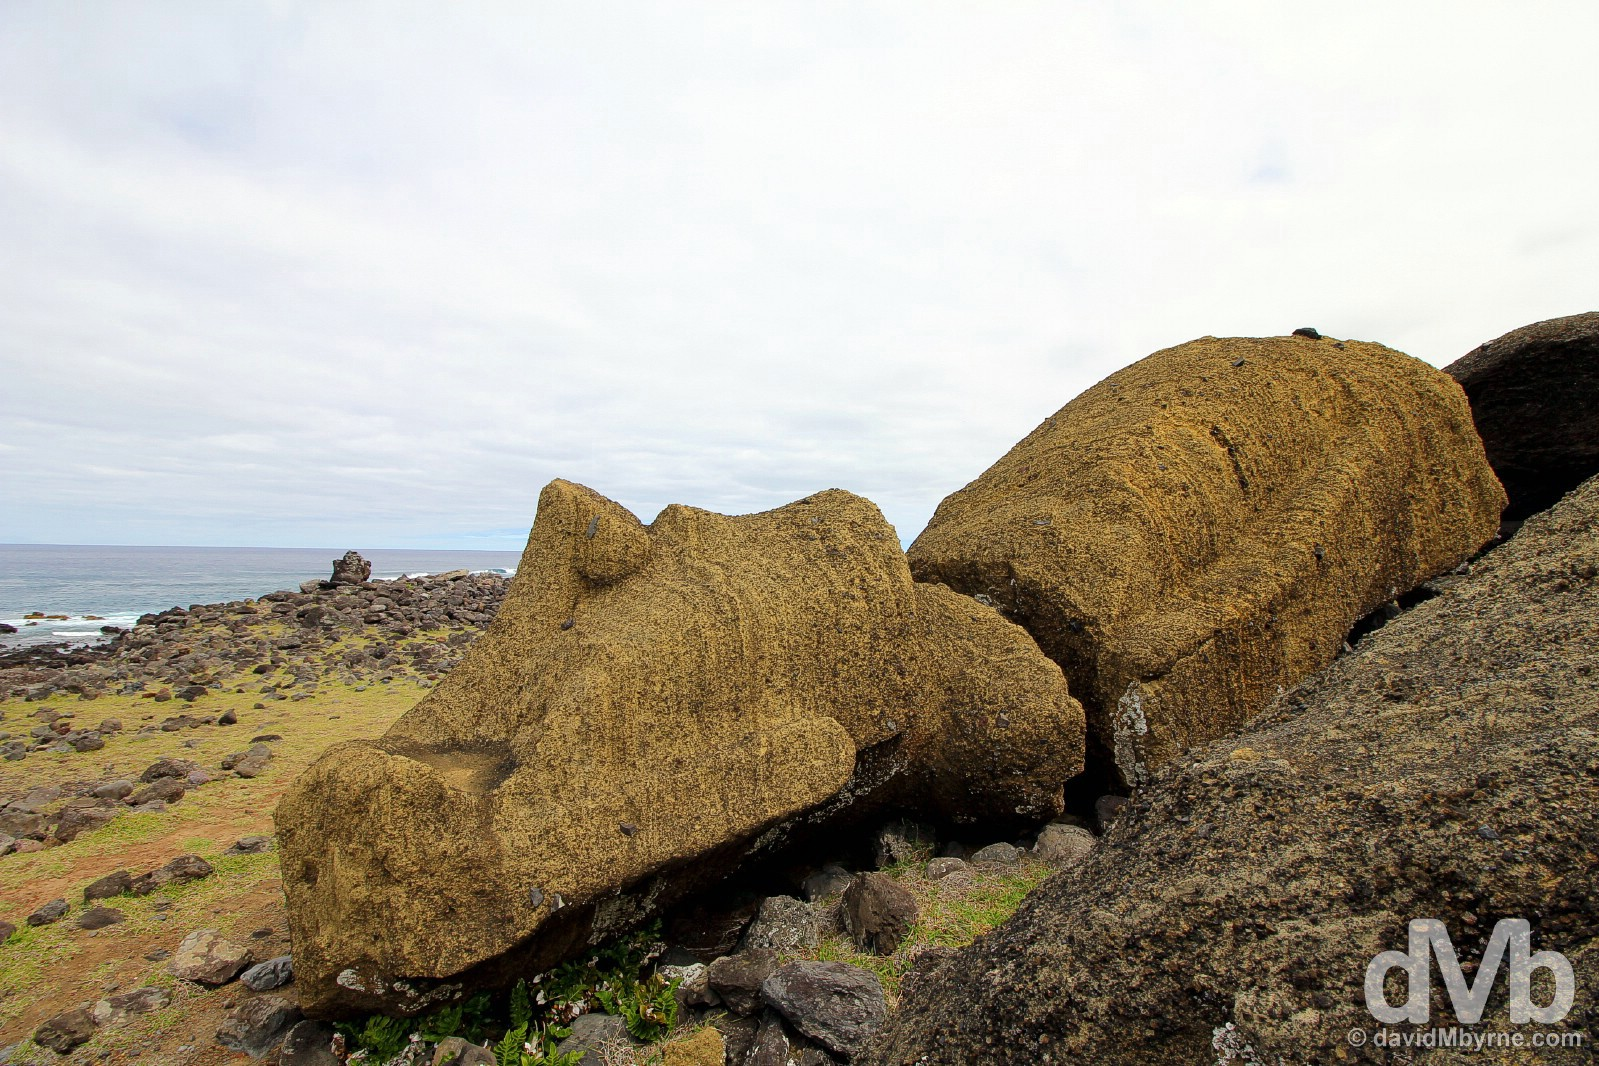 Fallen giant. A toppled moai at One Makihi, Easter Island, Chile. September 29, 2015.